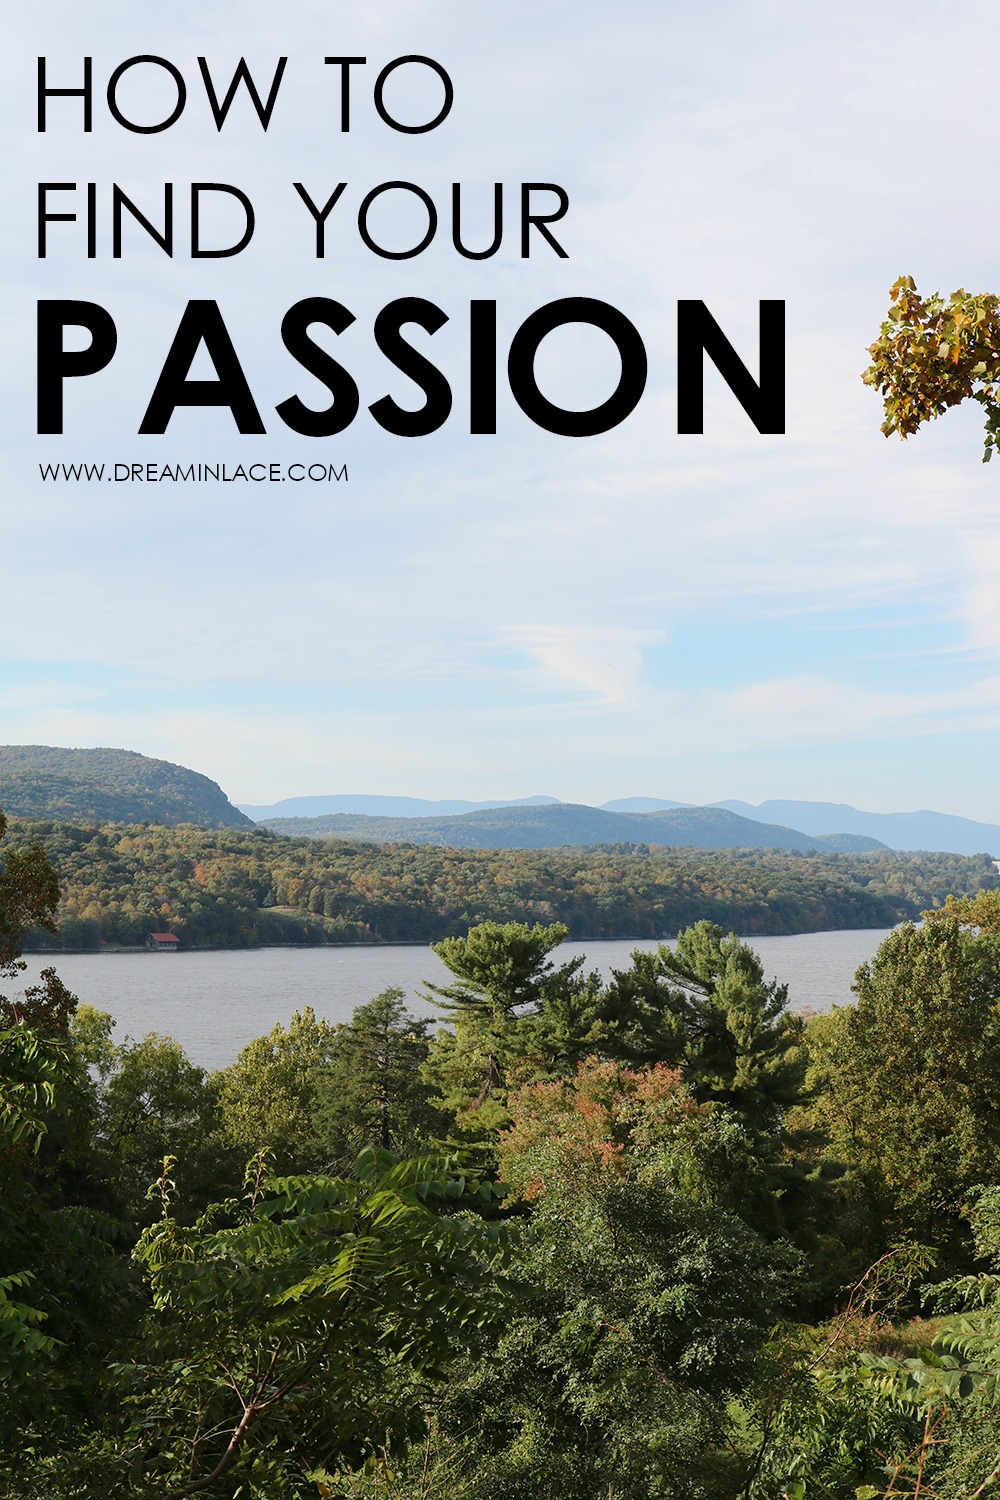 How to find your passion I DreaminLace.com